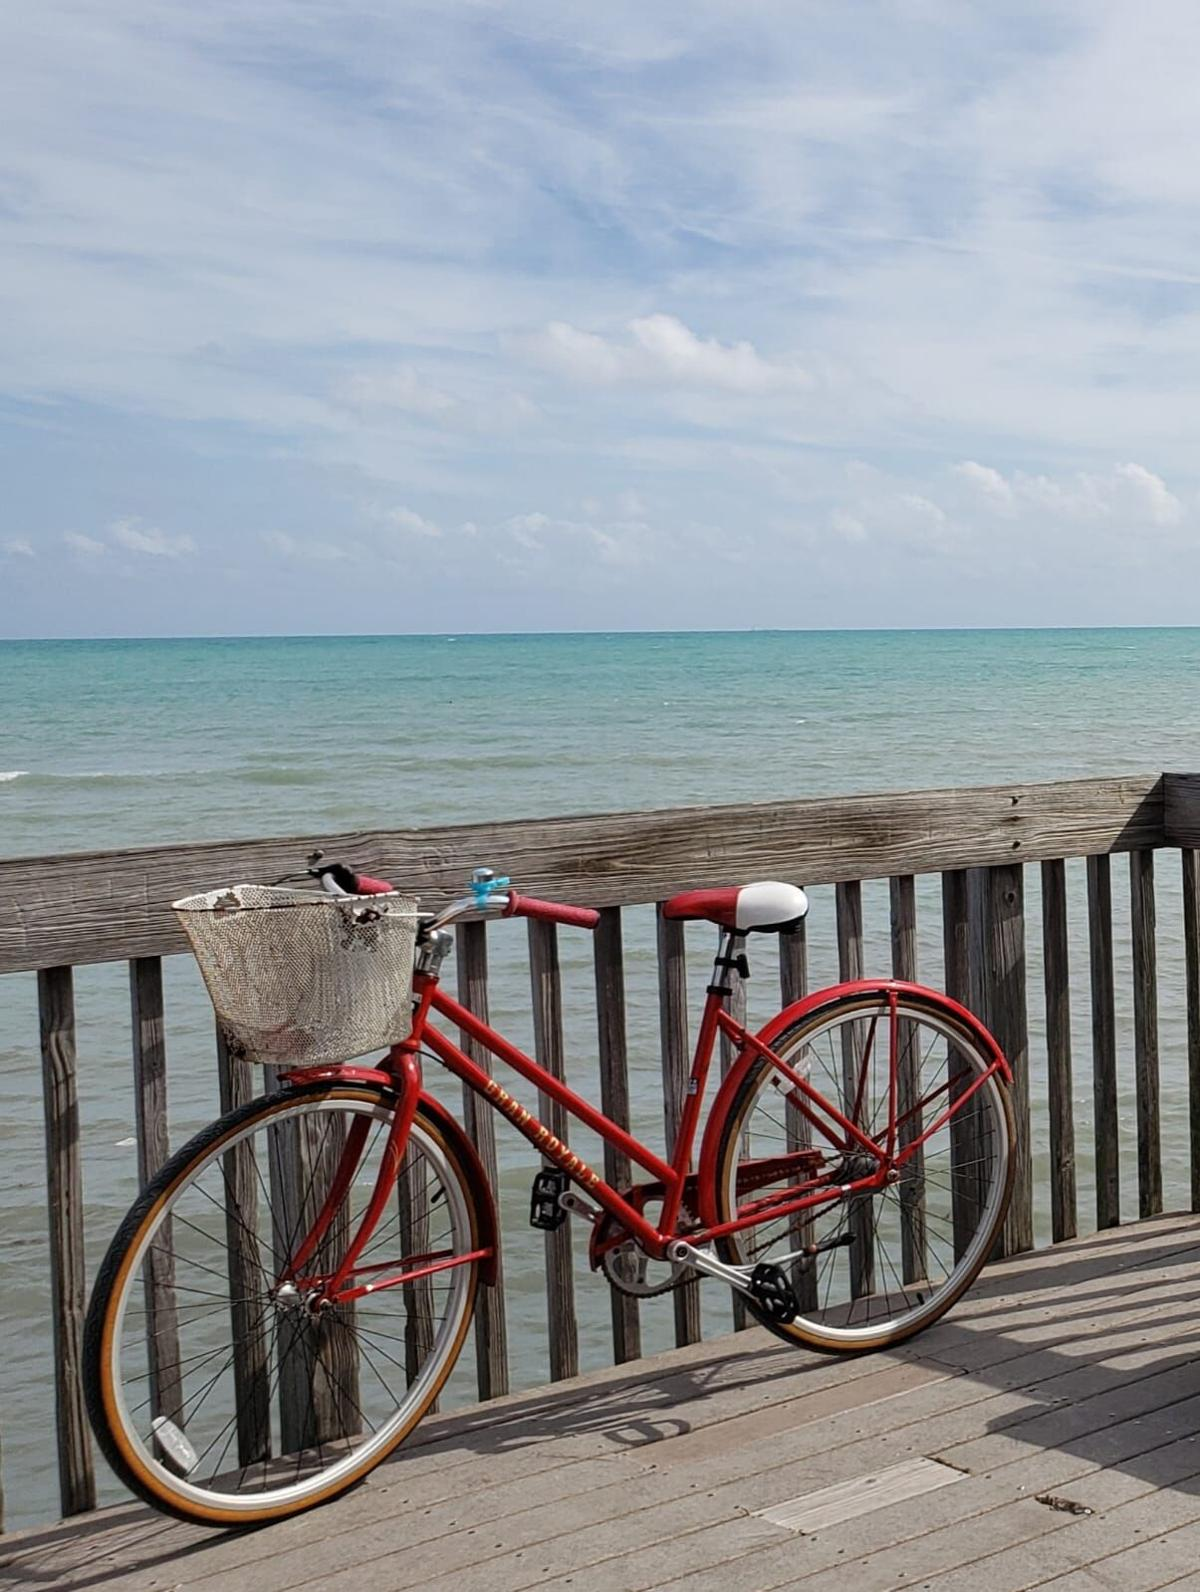 Miami named the second most beautiful city in the world for bicycling; Rickenbacker cited as cycling attraction